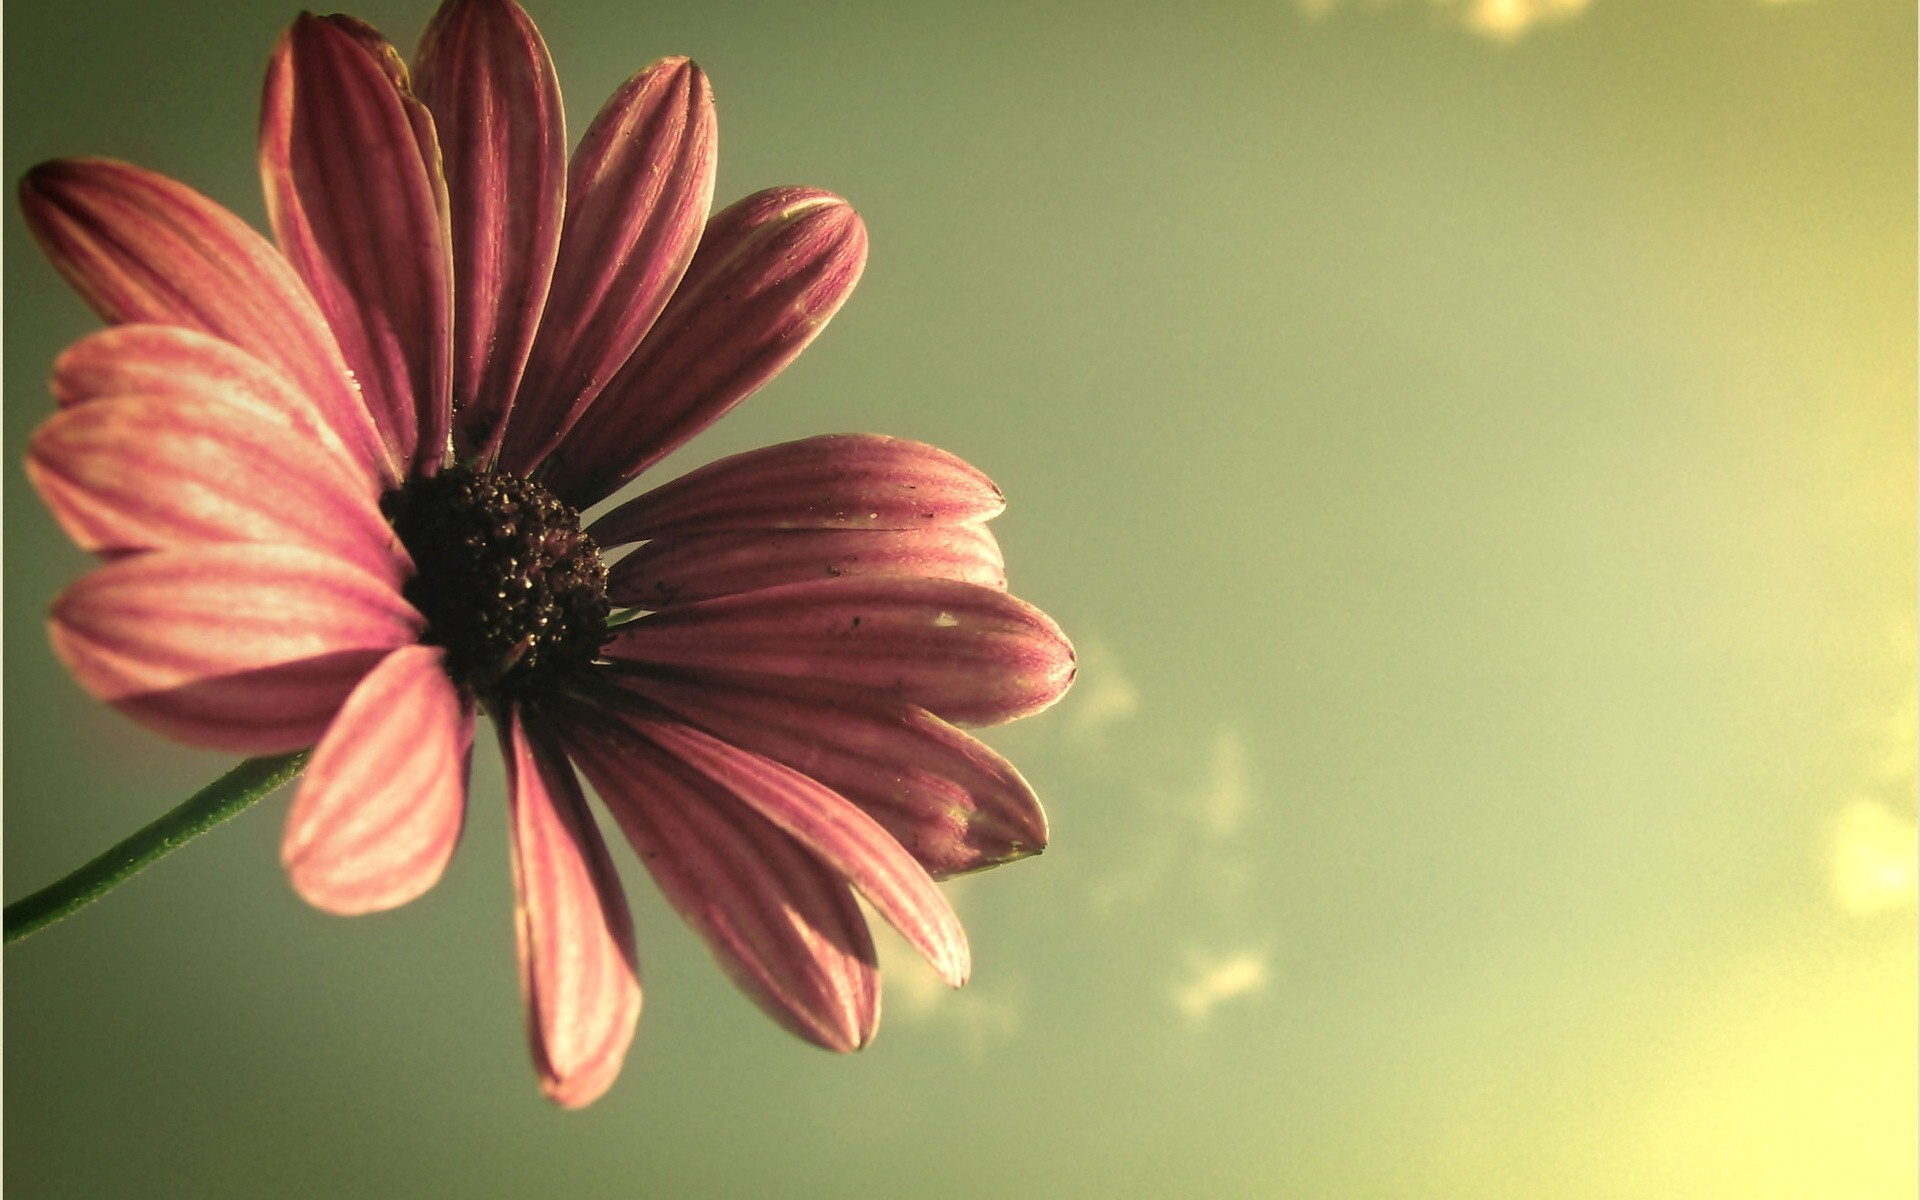 God Related Quotes Wallpaper Beautiful Flower Hd Image Hd Wallpapers